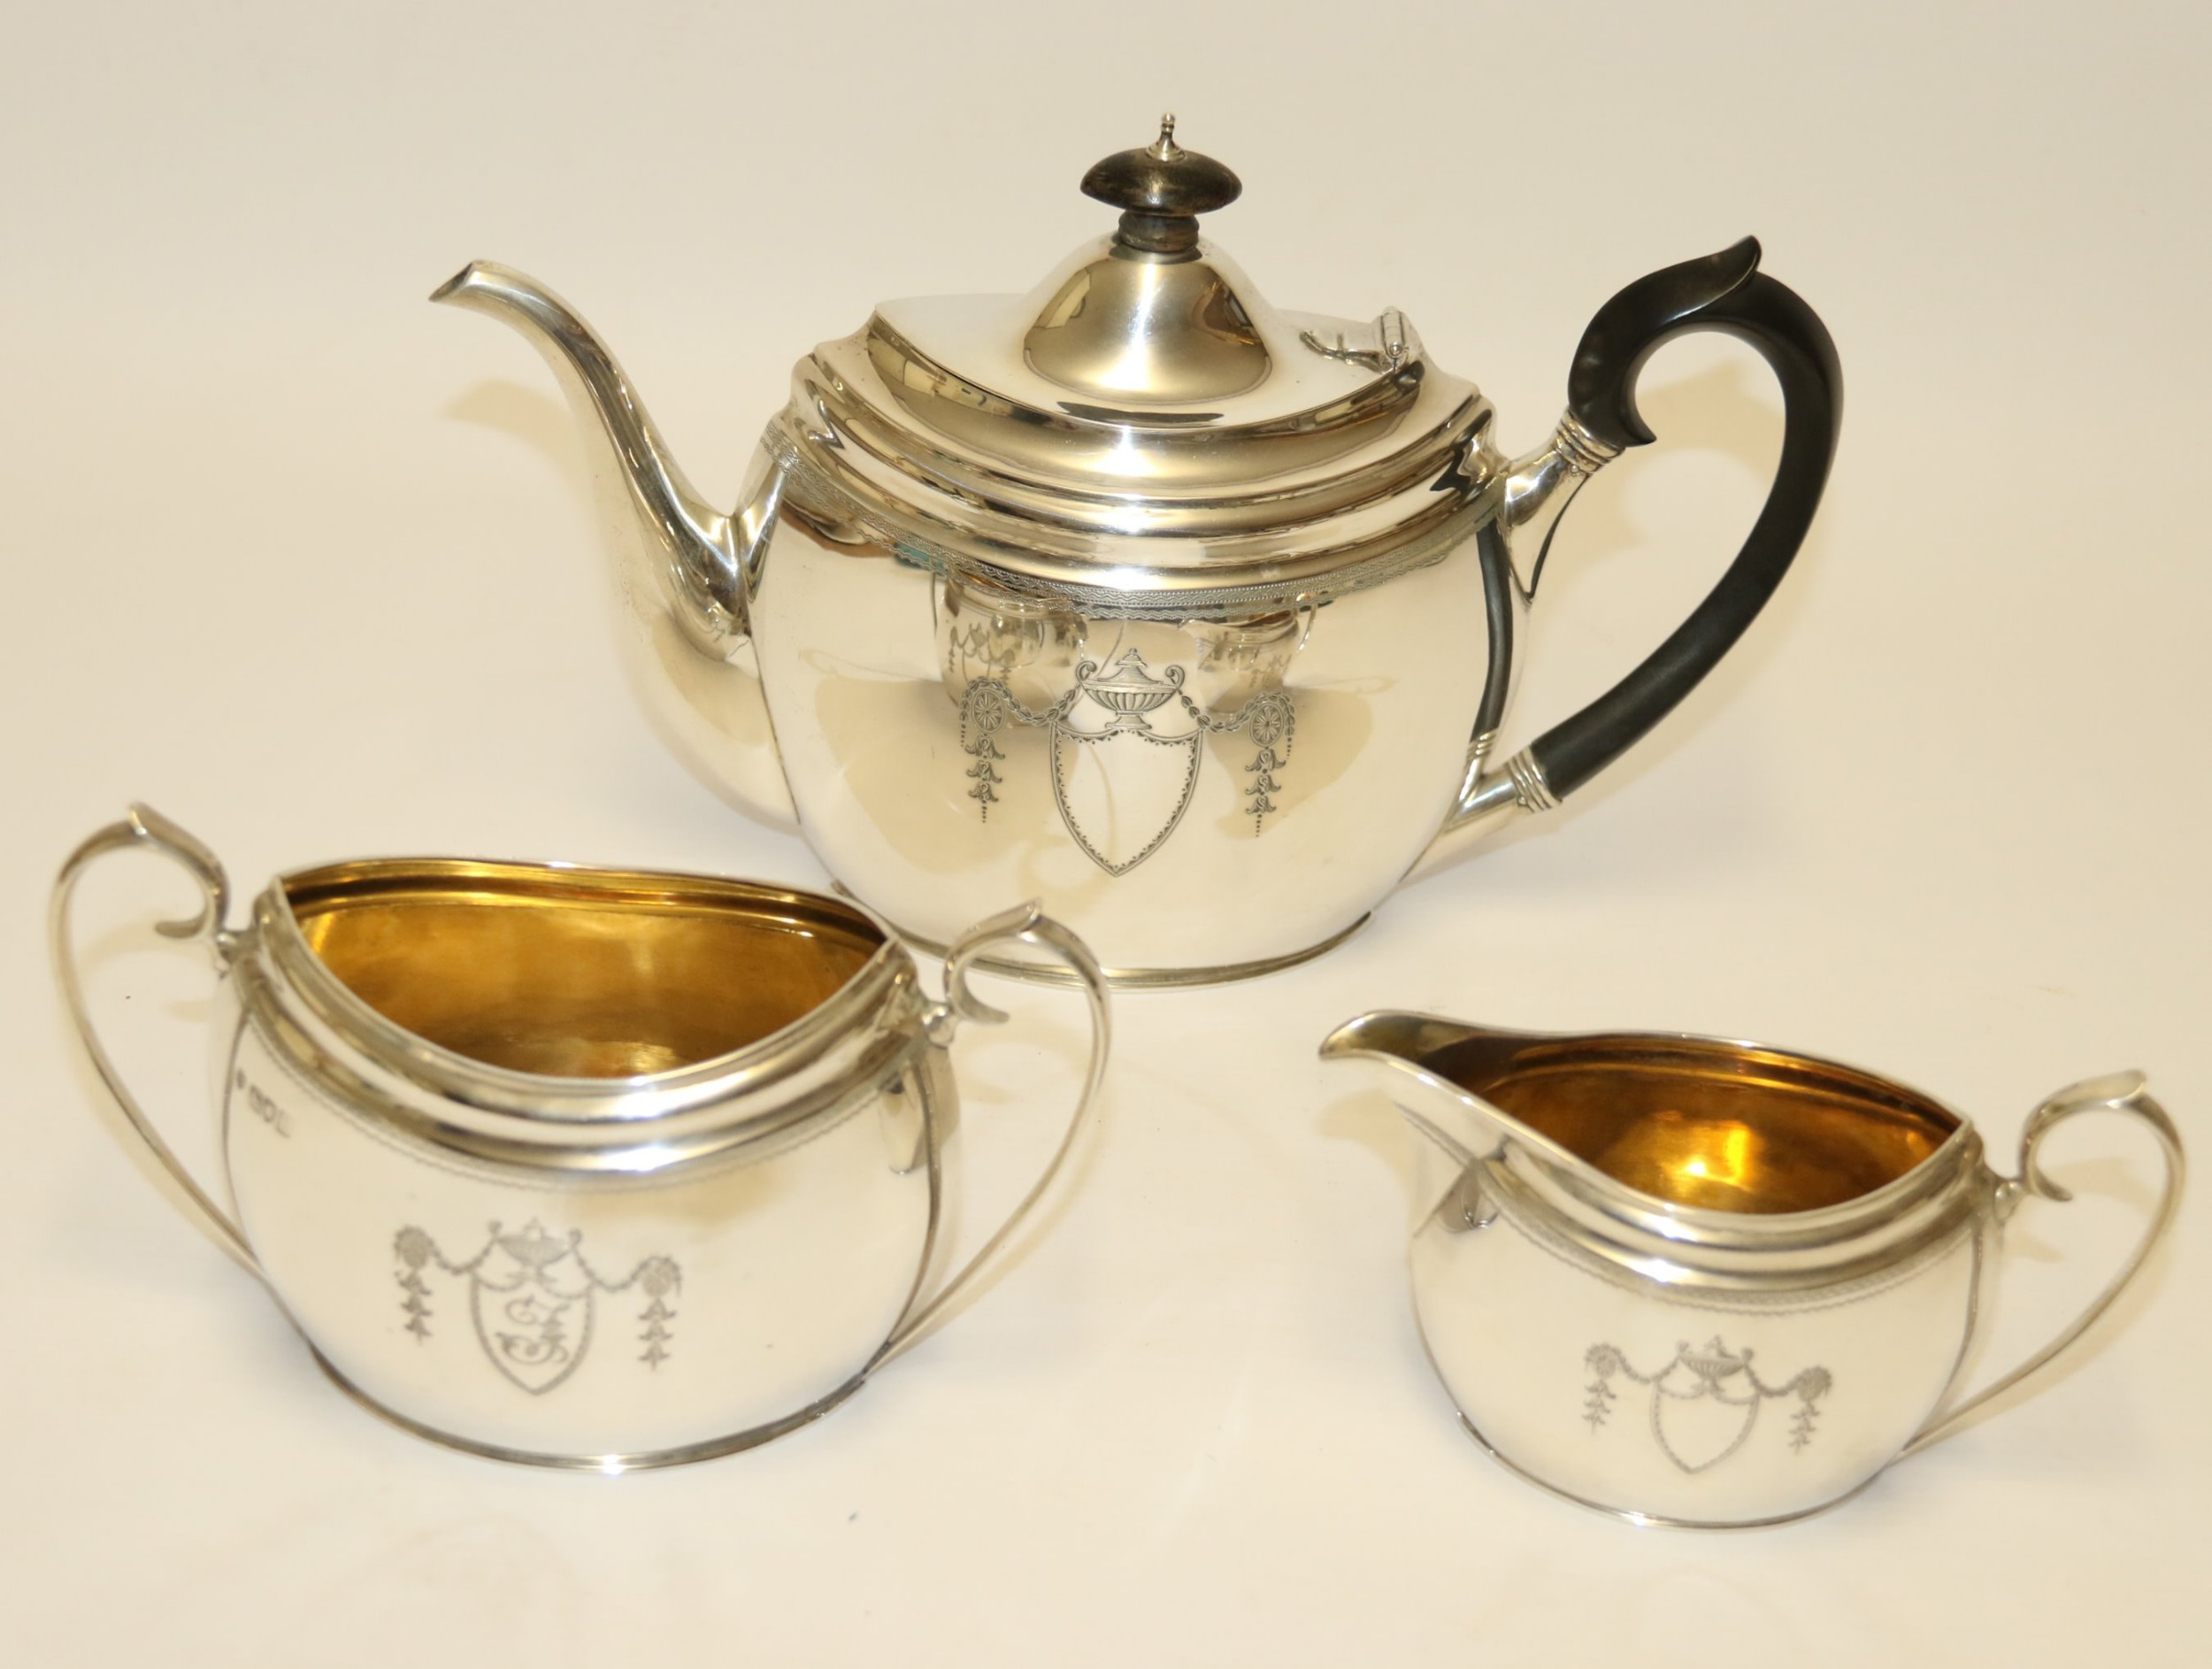 exceptional silver tea set by edward barnard and sons